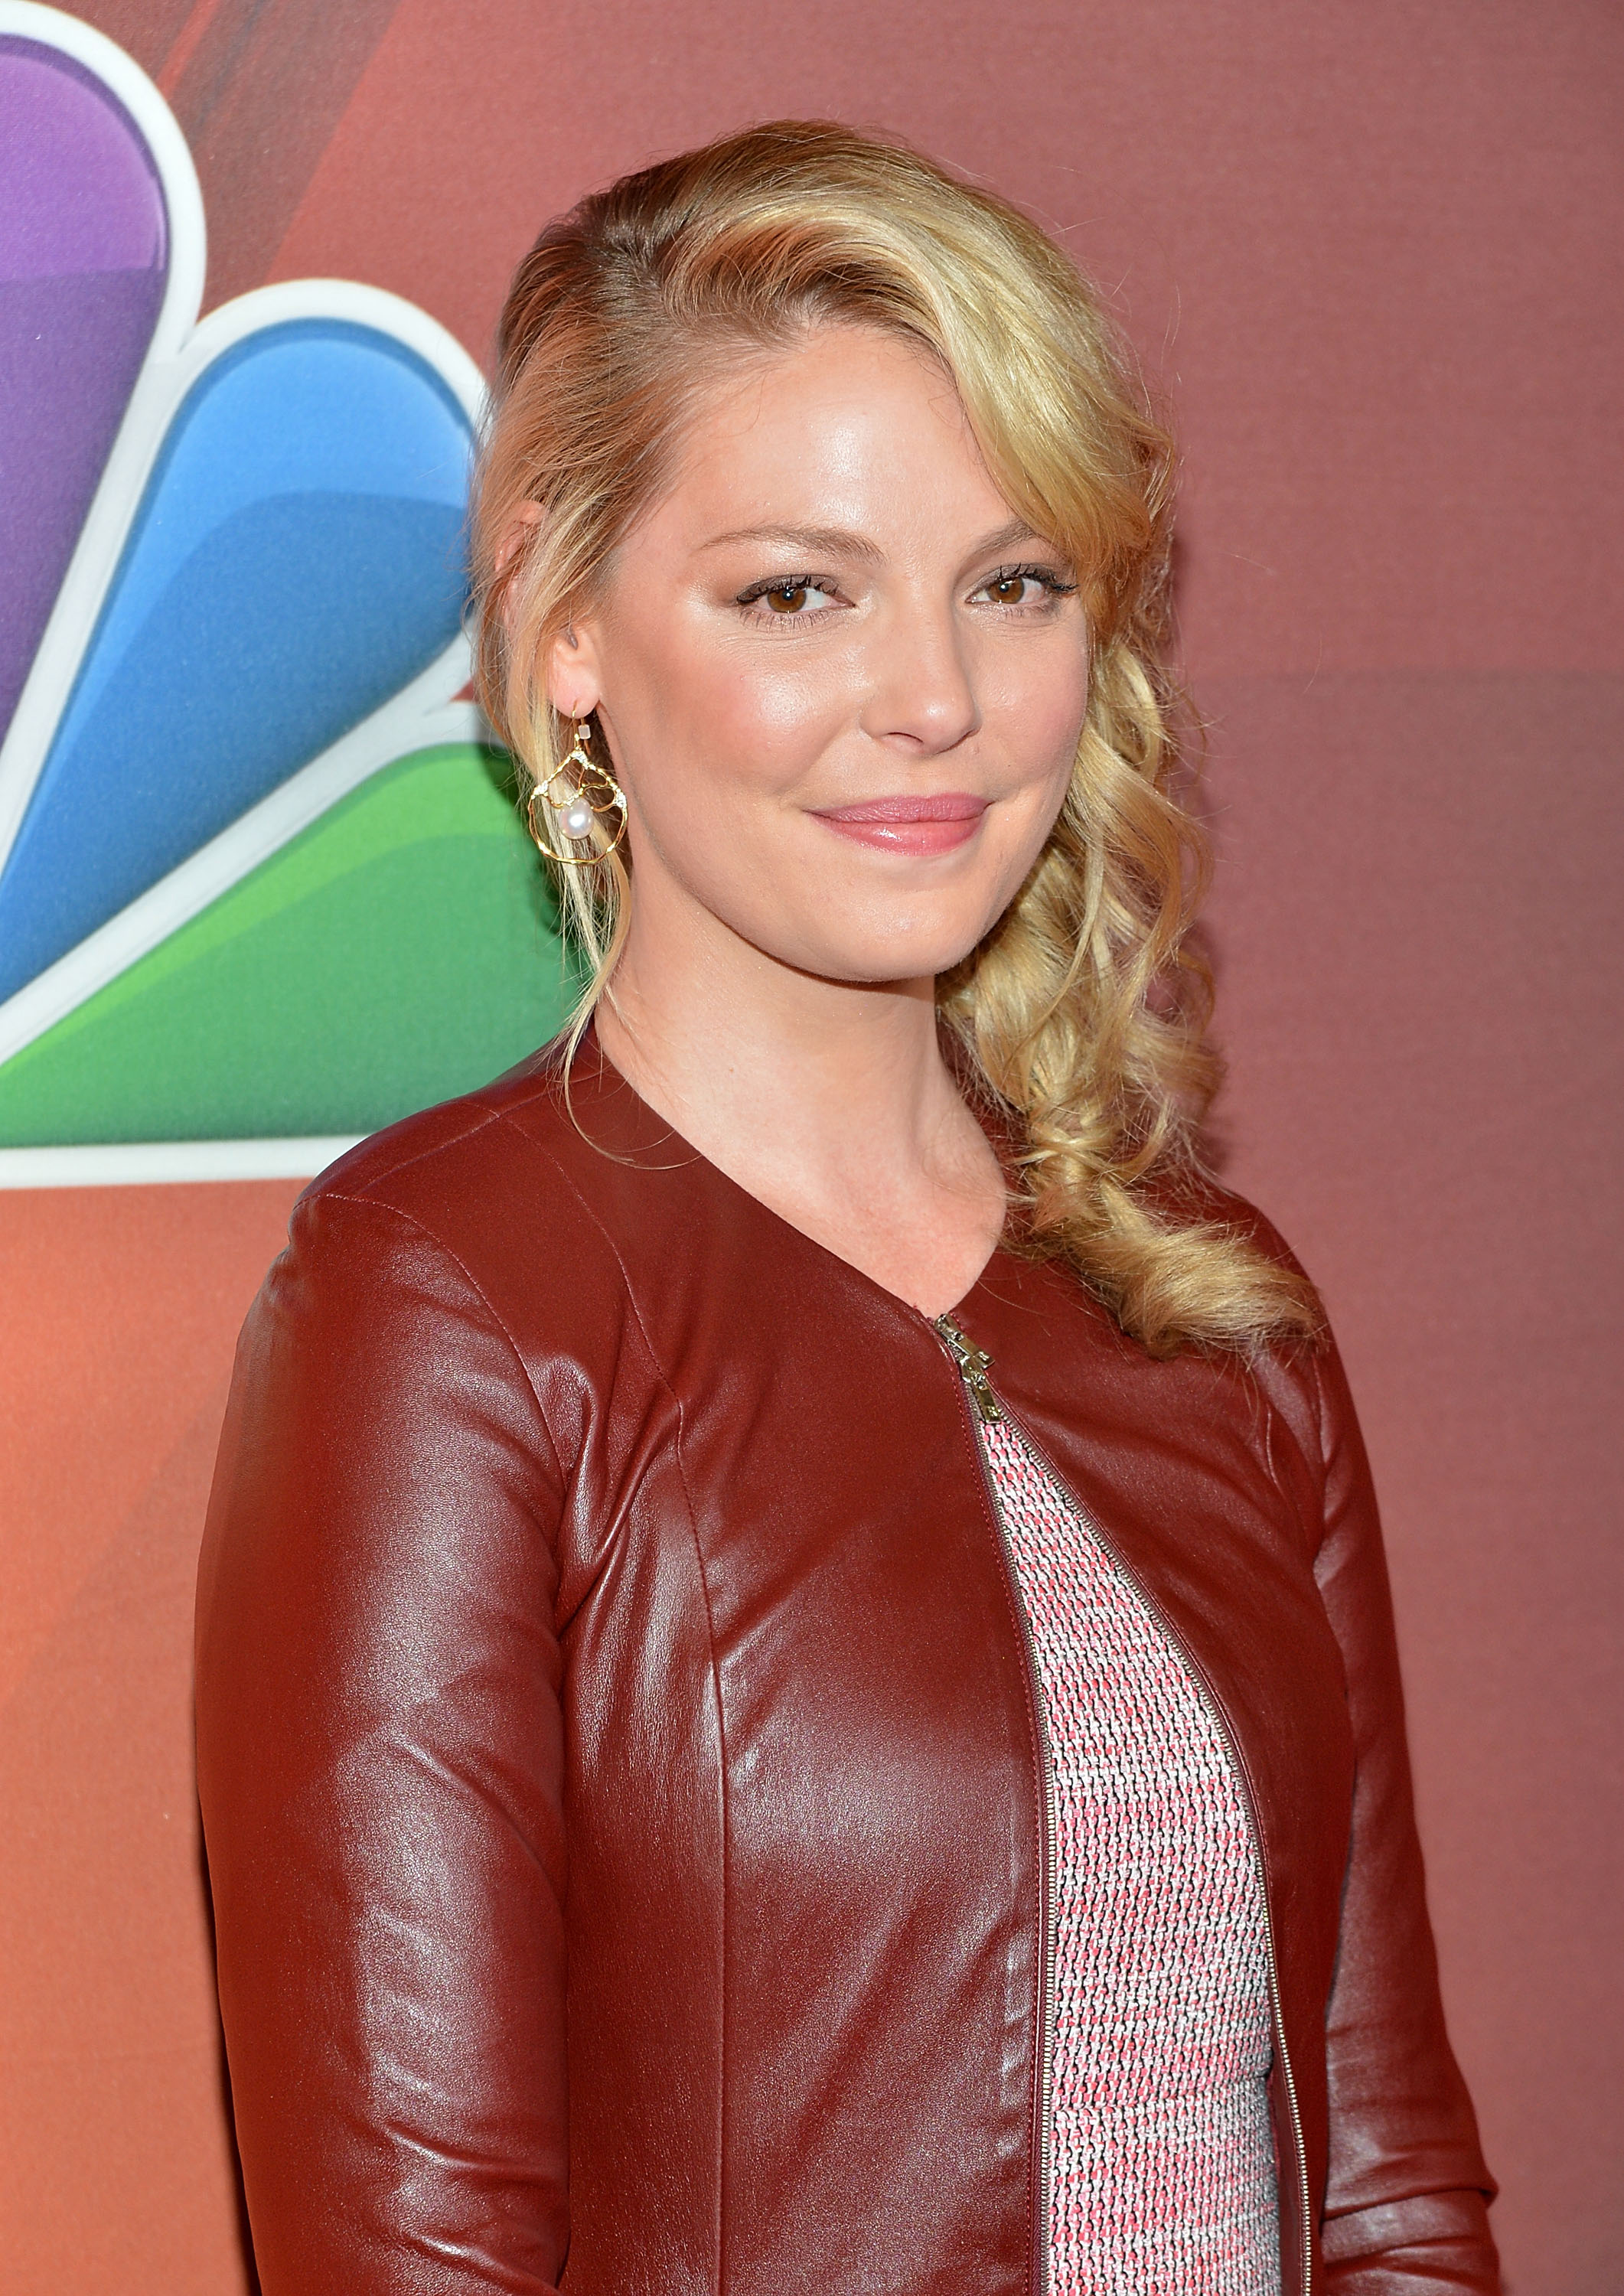 Actress Katherine Heigl attends the 2014 NBC Upfront Presentation at The Jacob K. Javits Convention Center on May 12, 2014 in New York City.